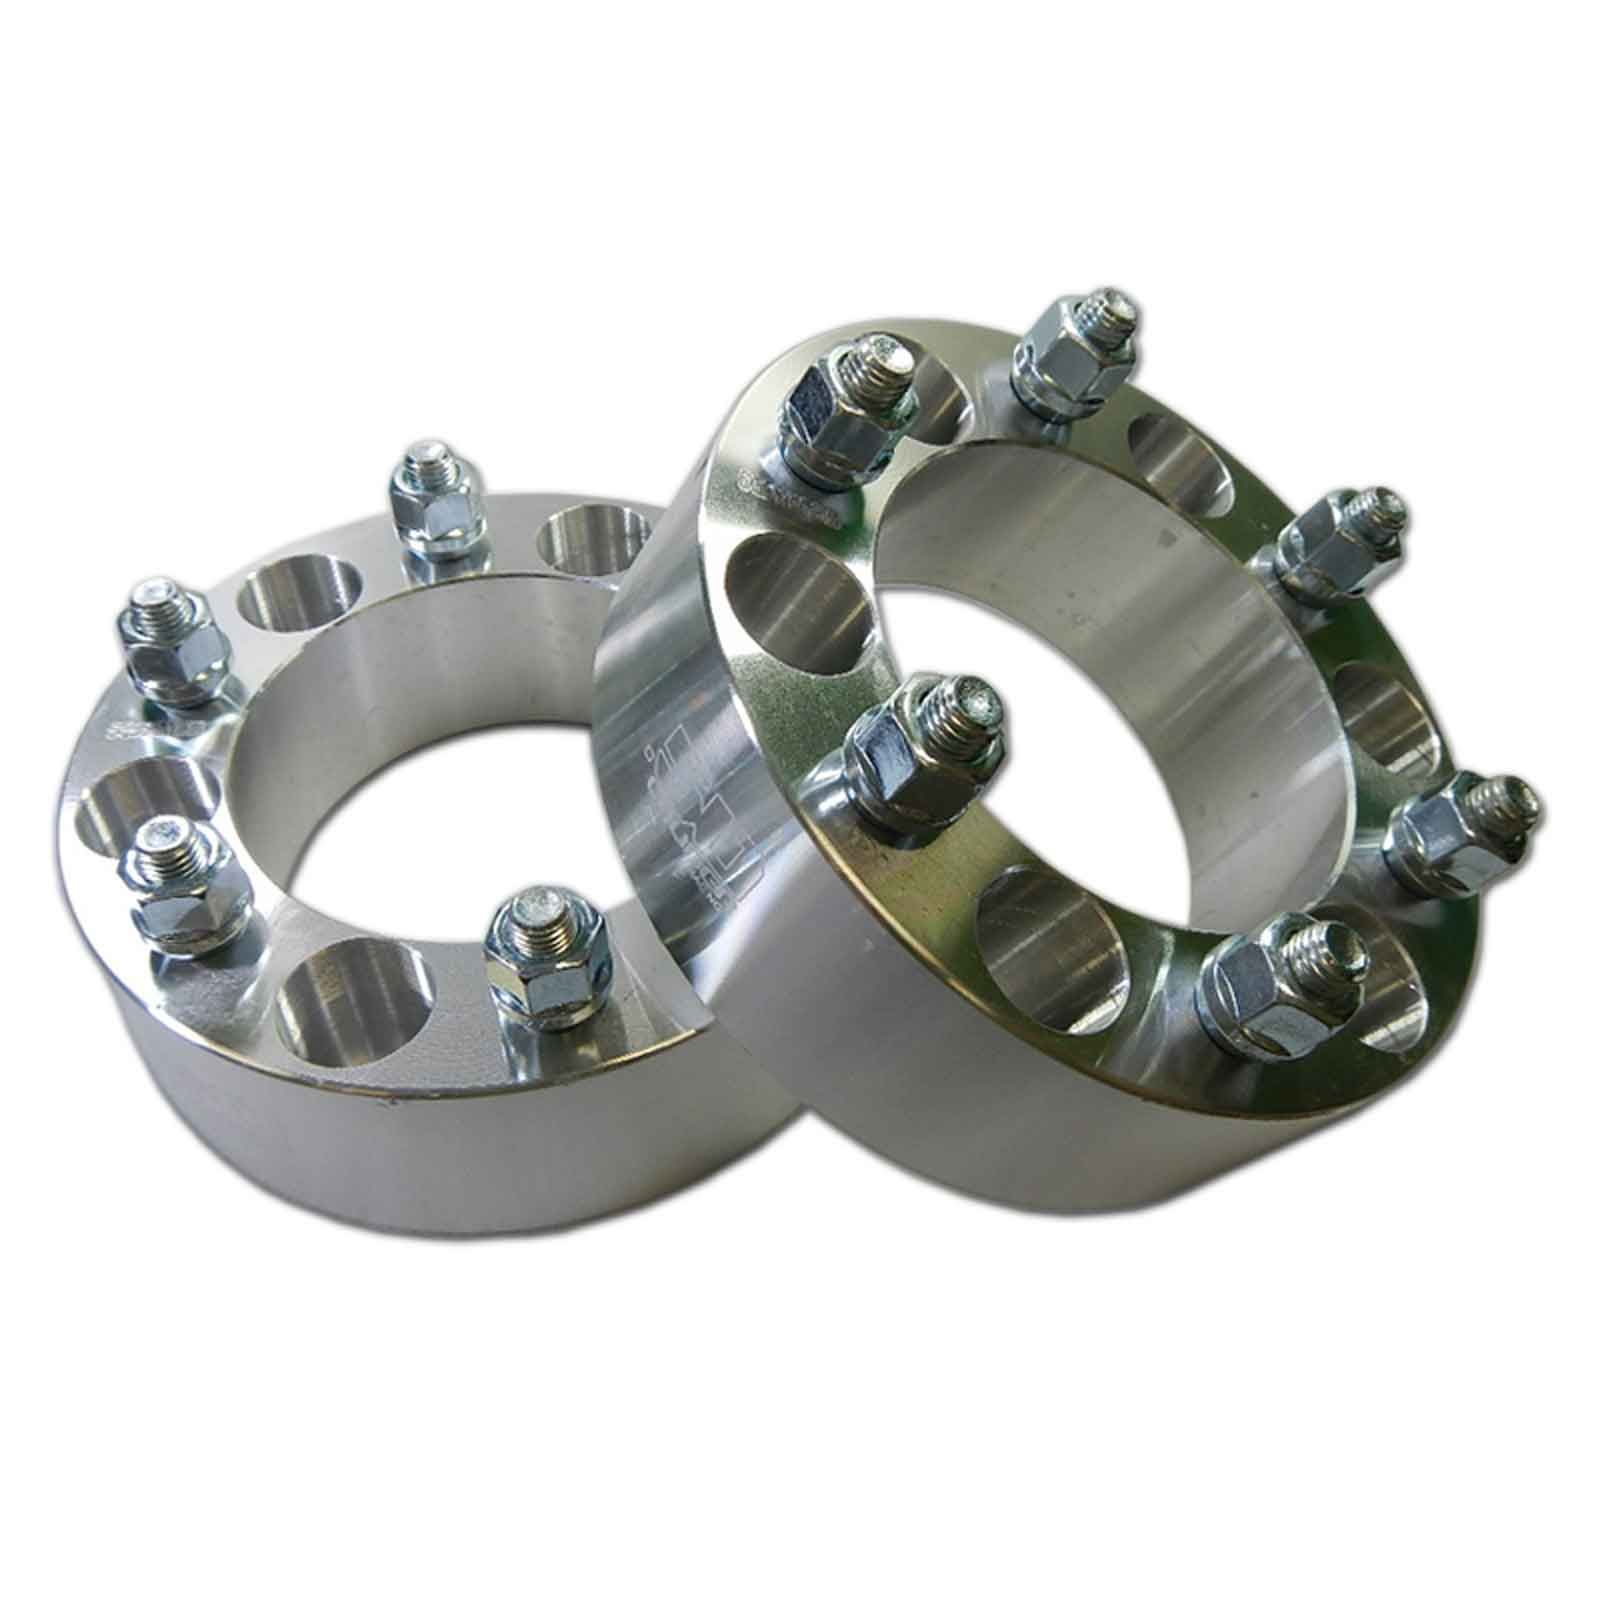 "Pair 6x5.5 139.7 Wheel Spacers 2"" Thick 12mm Lug Fit"